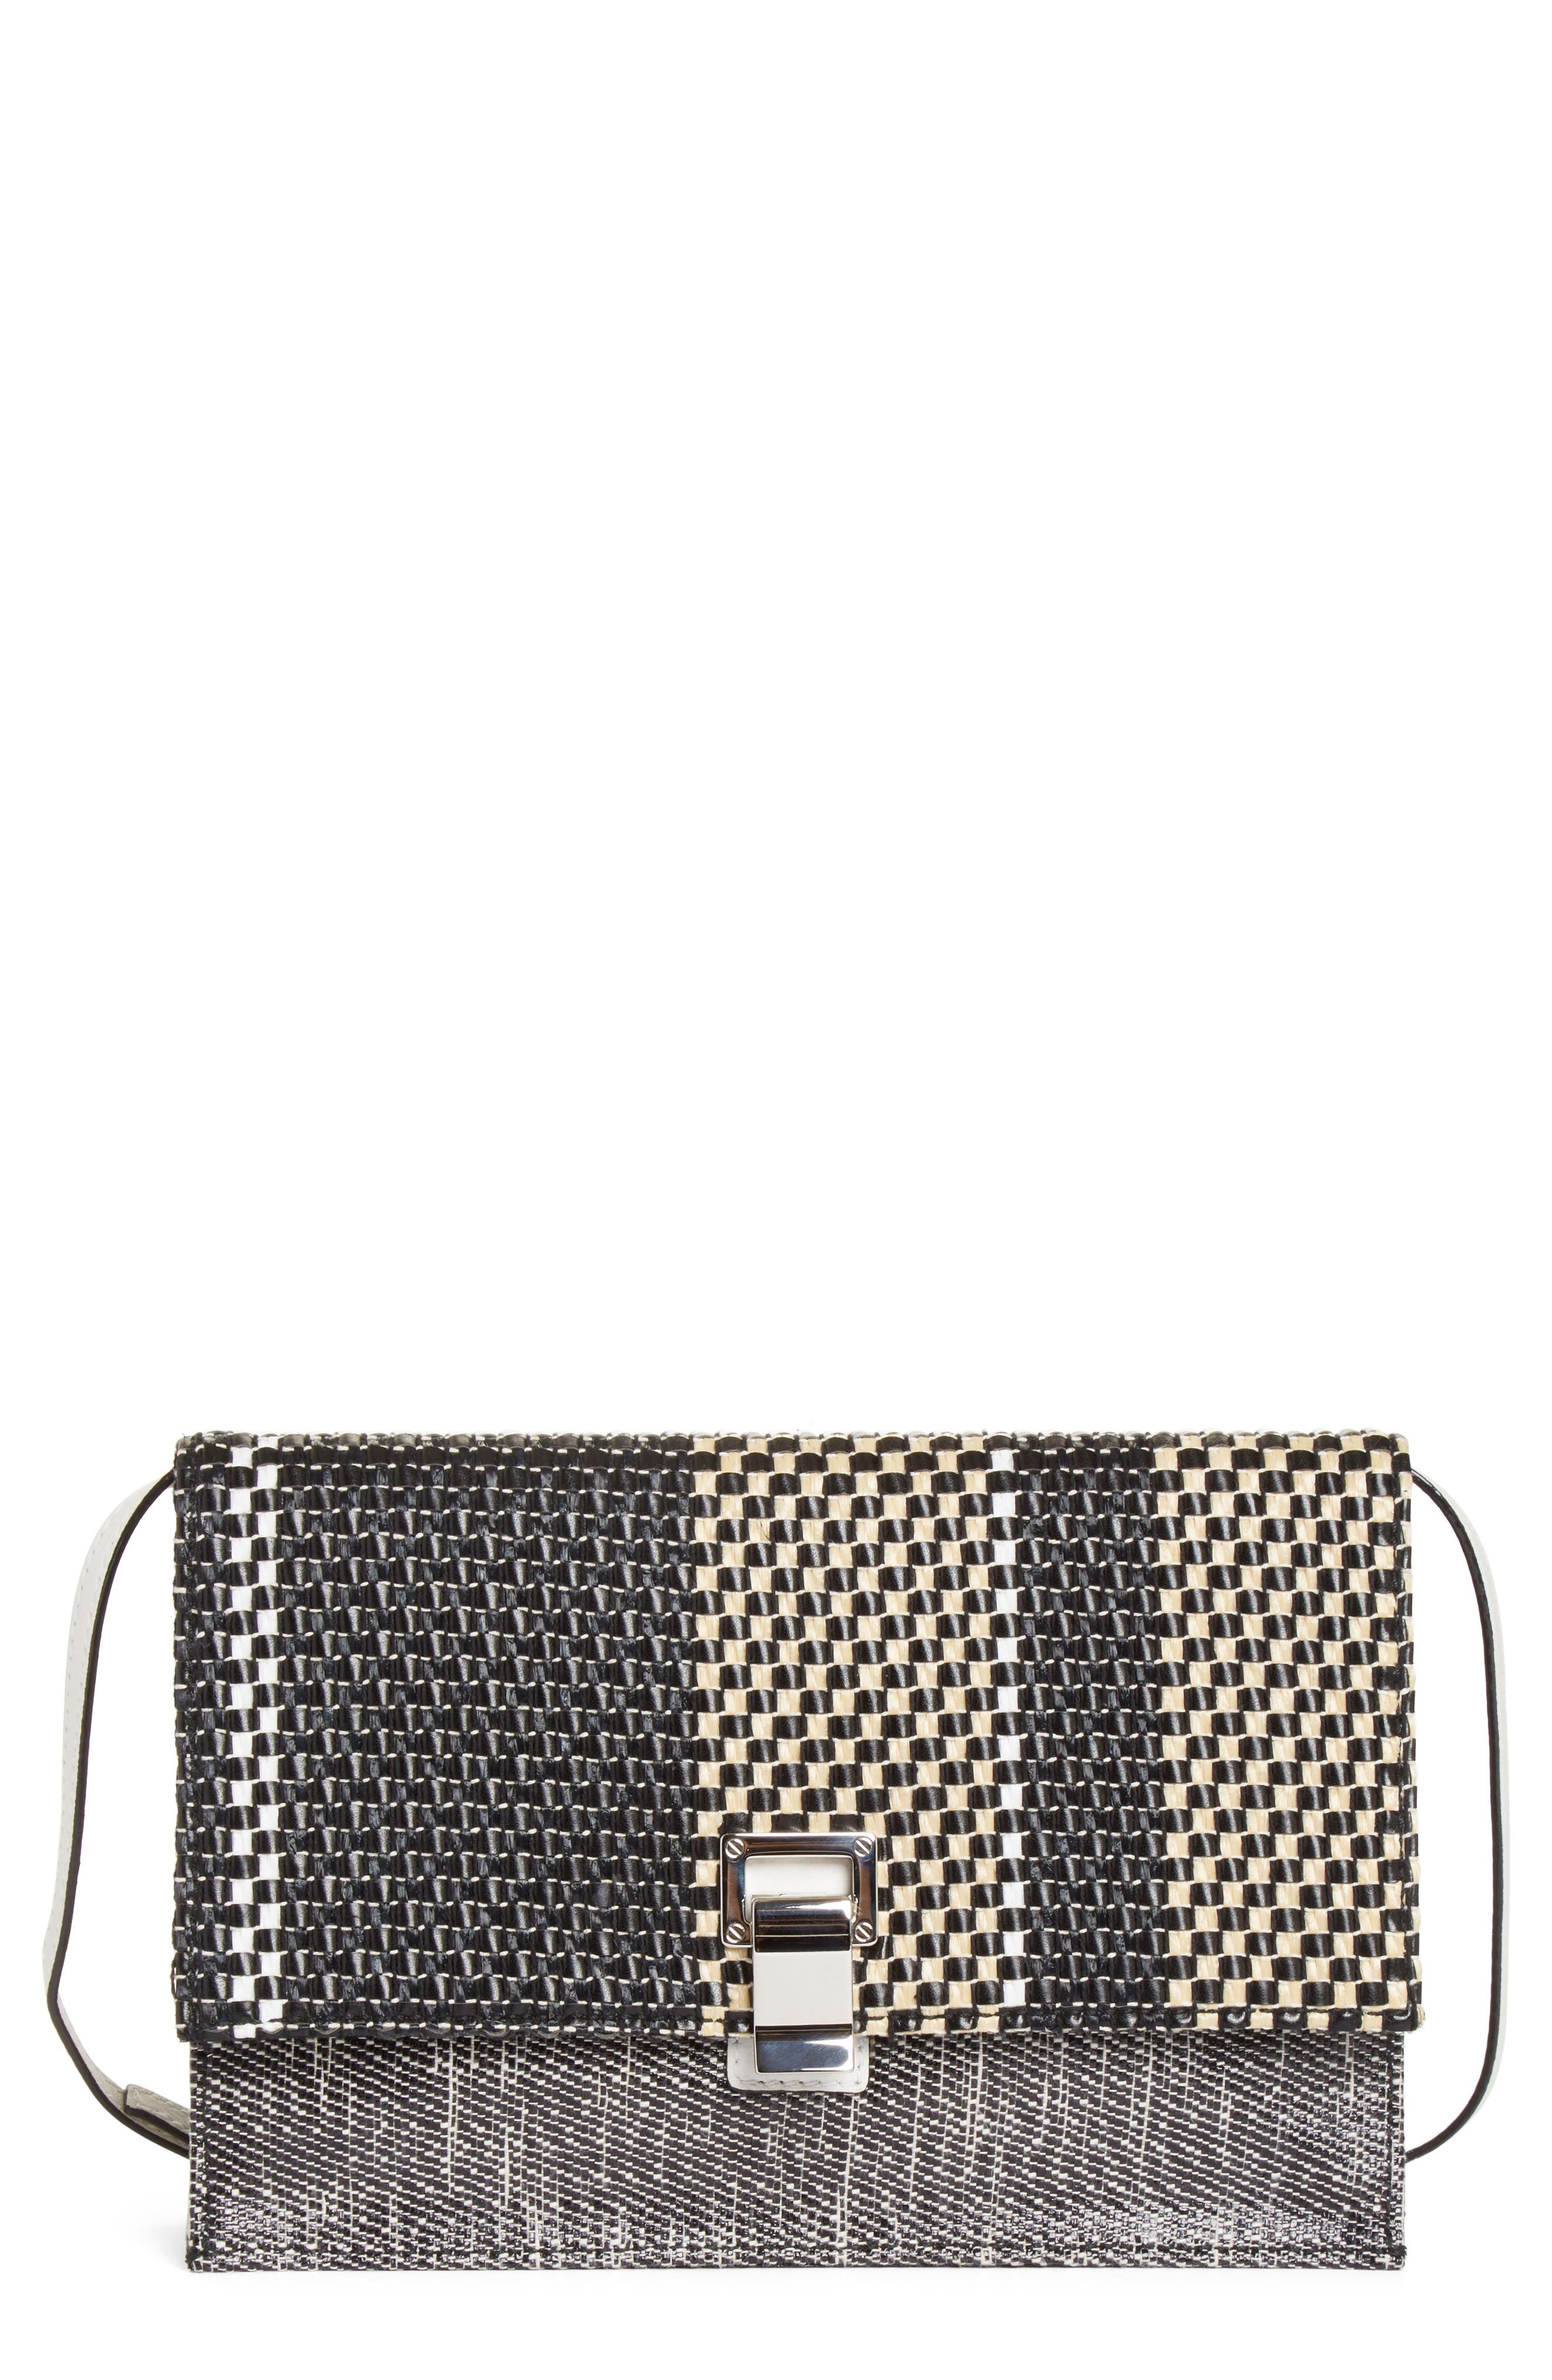 Main Image - Proenza Schouler Small Lunch Bag Woven Leather Shoulder Bag